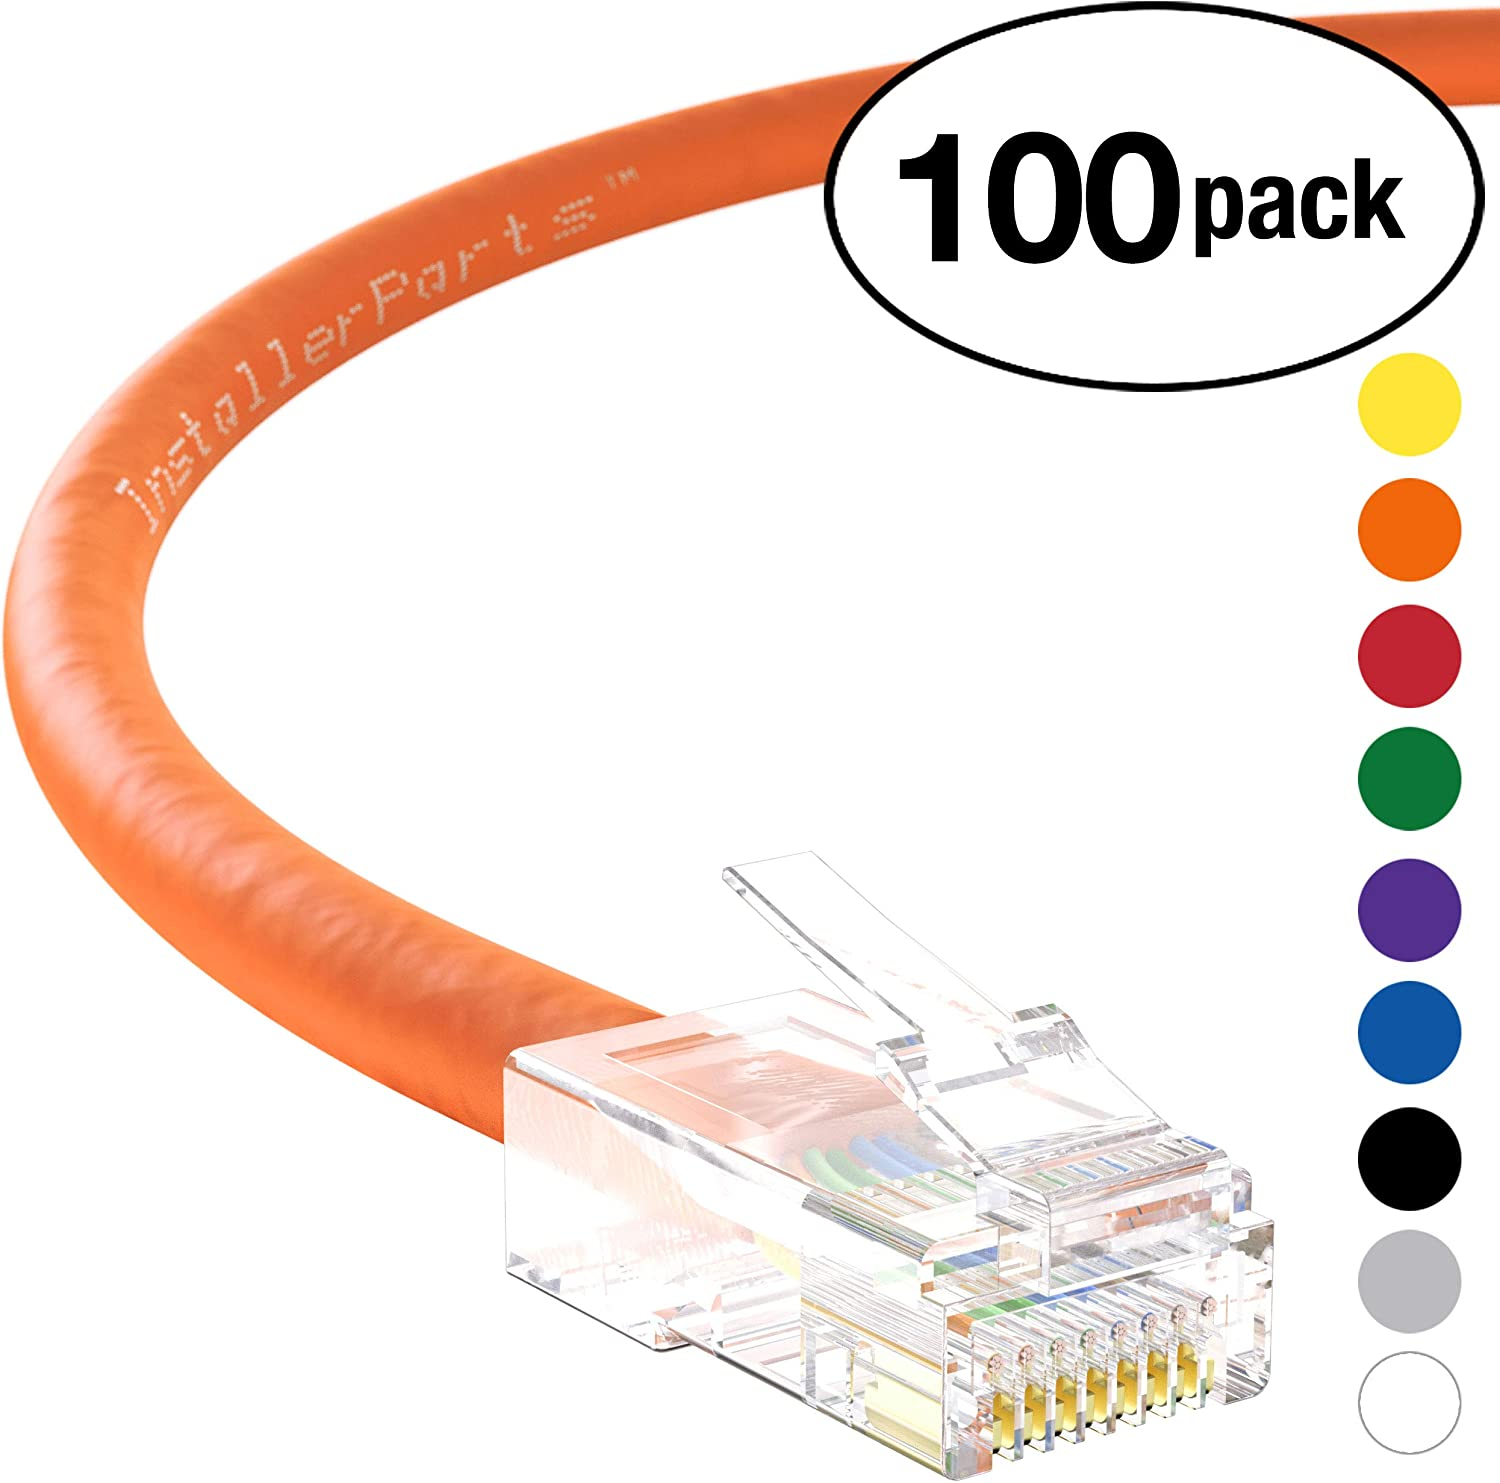 InstallerParts Professional Series 100 Pack 1Gigabit//Sec Network//Internet Cable Ethernet Cable CAT5E Cable UTP Non-Booted 0.5 FT 350MHZ Orange